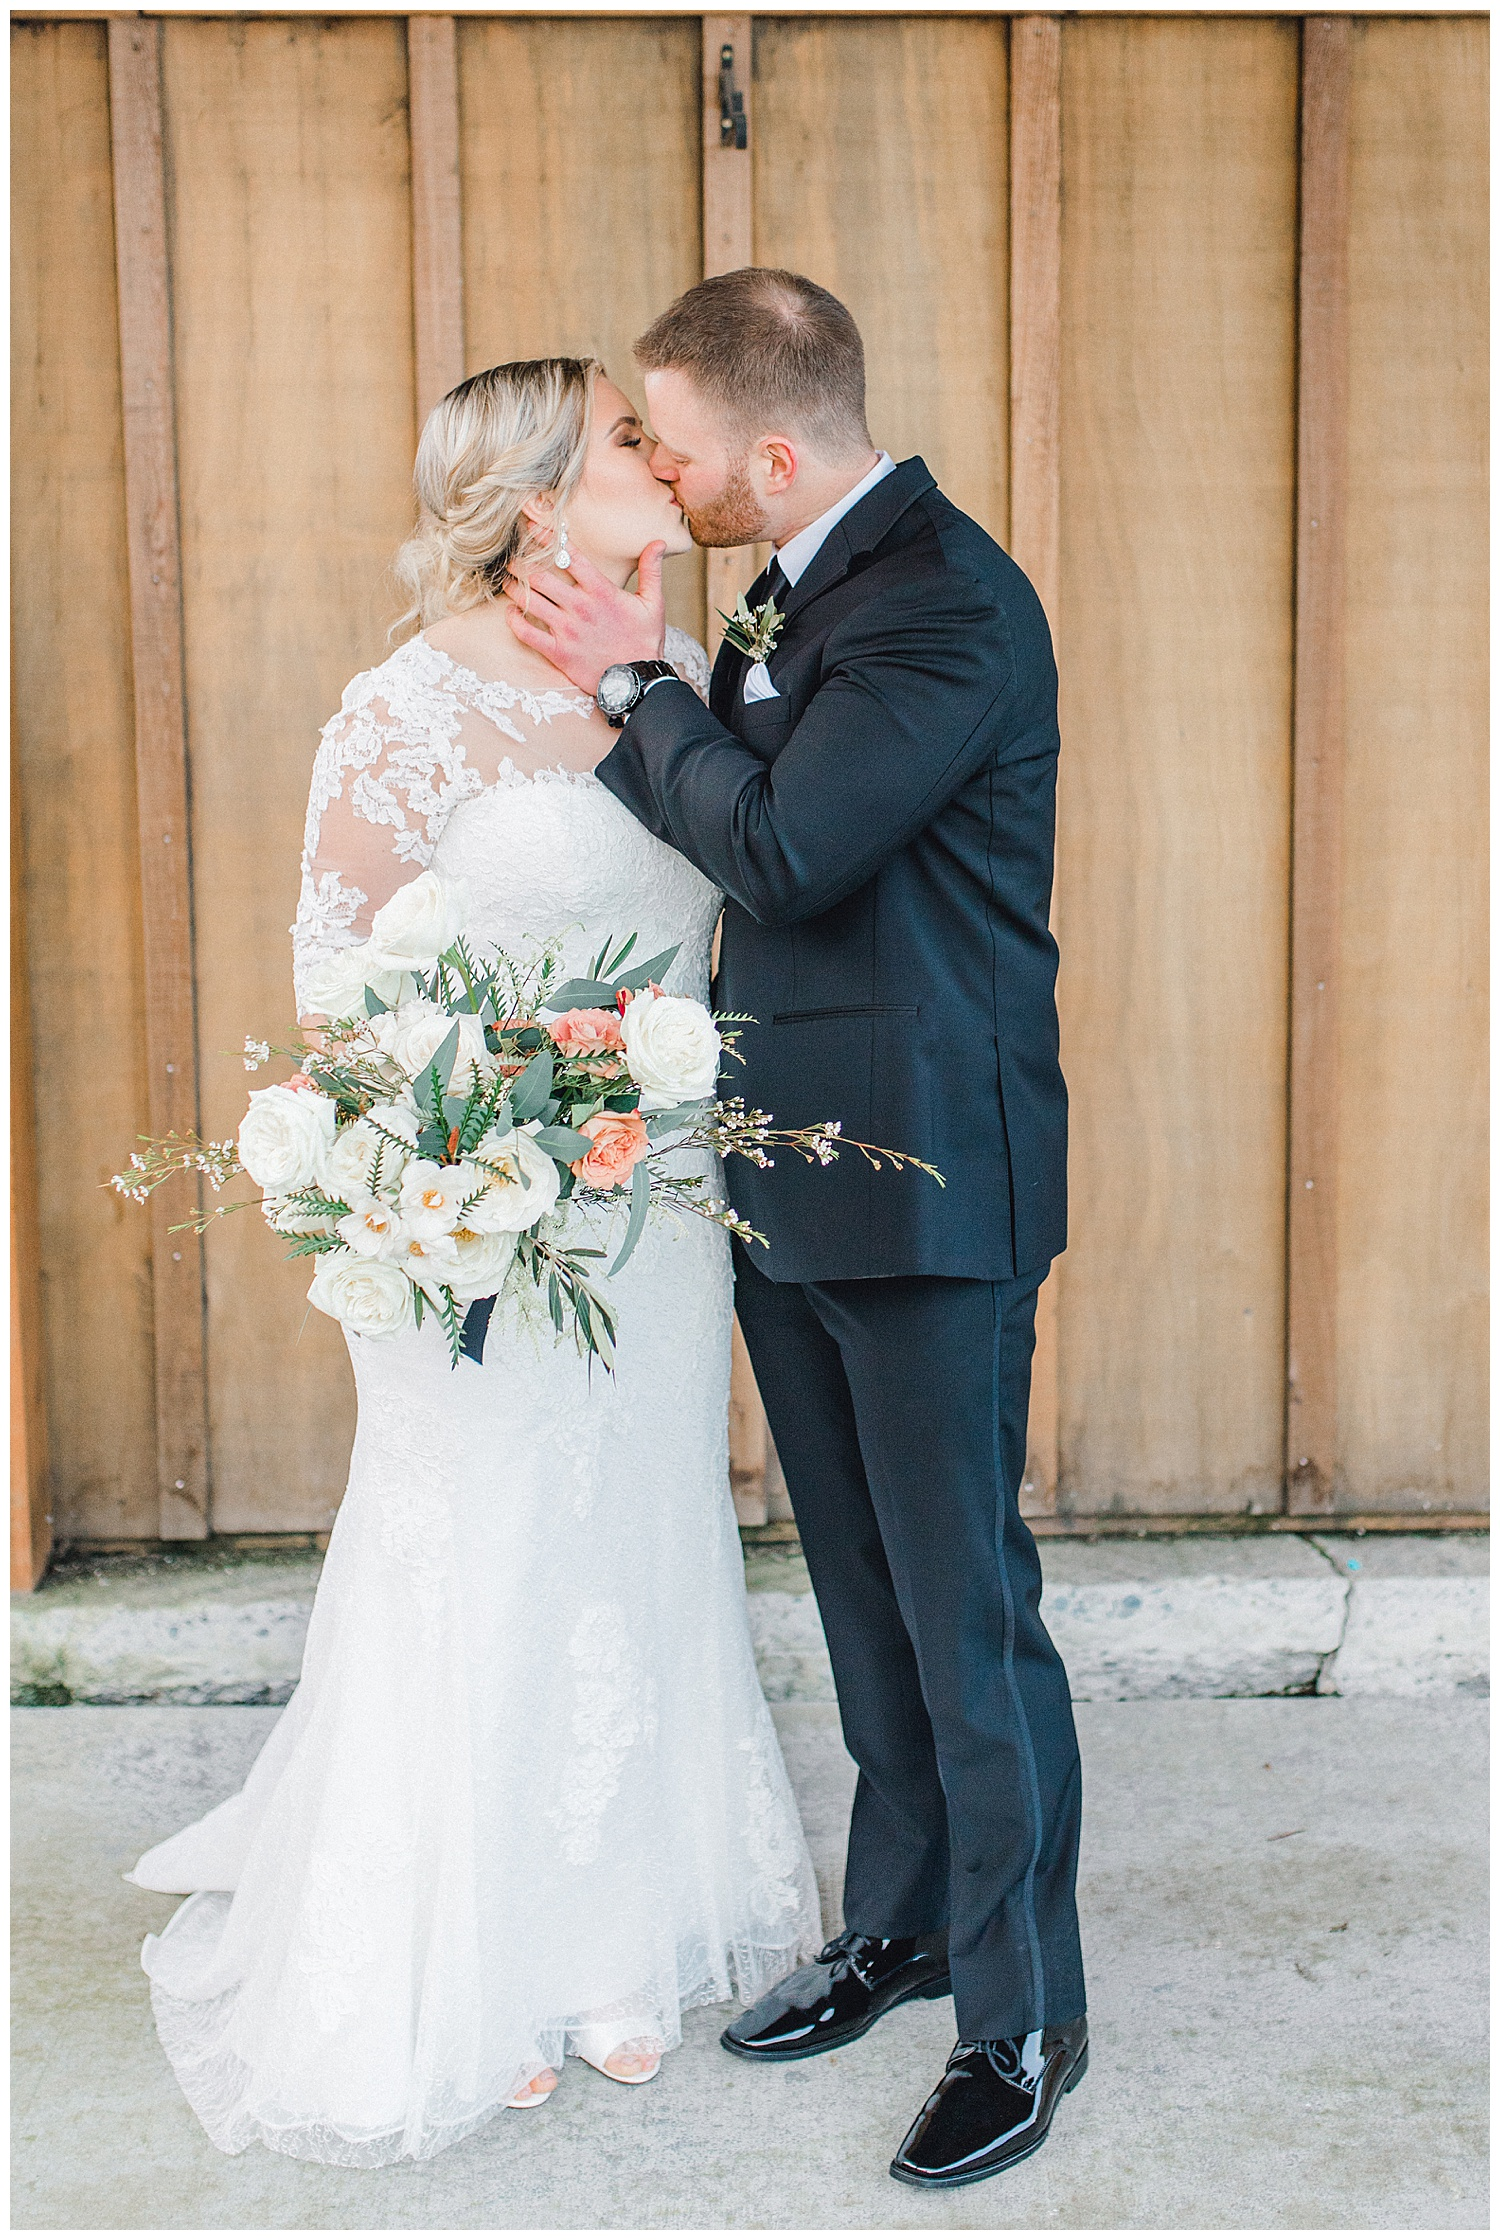 ERC-7154_A beautiful winter wedding in Snohomish, Washington at Thomas Family Farm was simply perfect.  This rustic and modern styled wedding was dripping with romance and photographed by Emma Rose Company, a pacific northwest wedding photographer..jpg